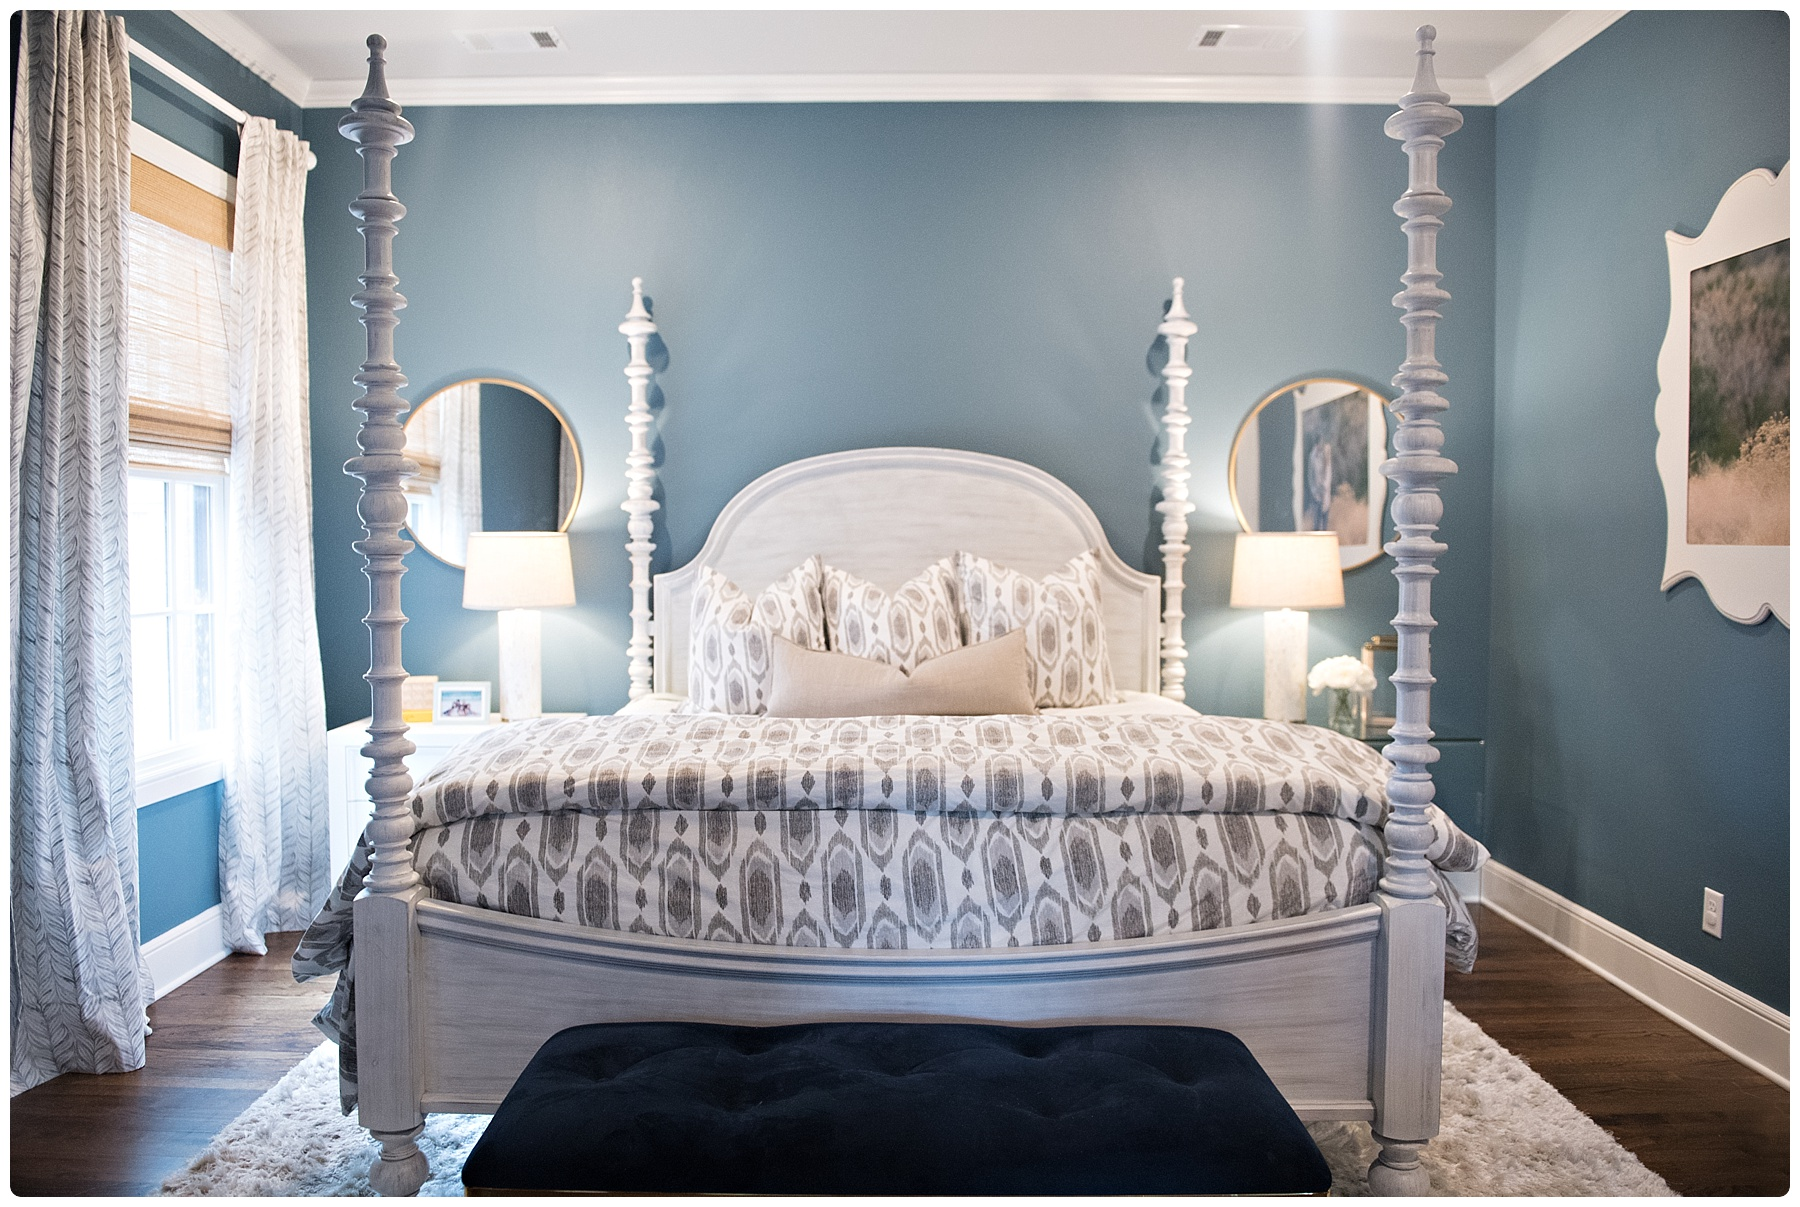 Where the magic happens | master bedroom inspiration - Style Duplicated